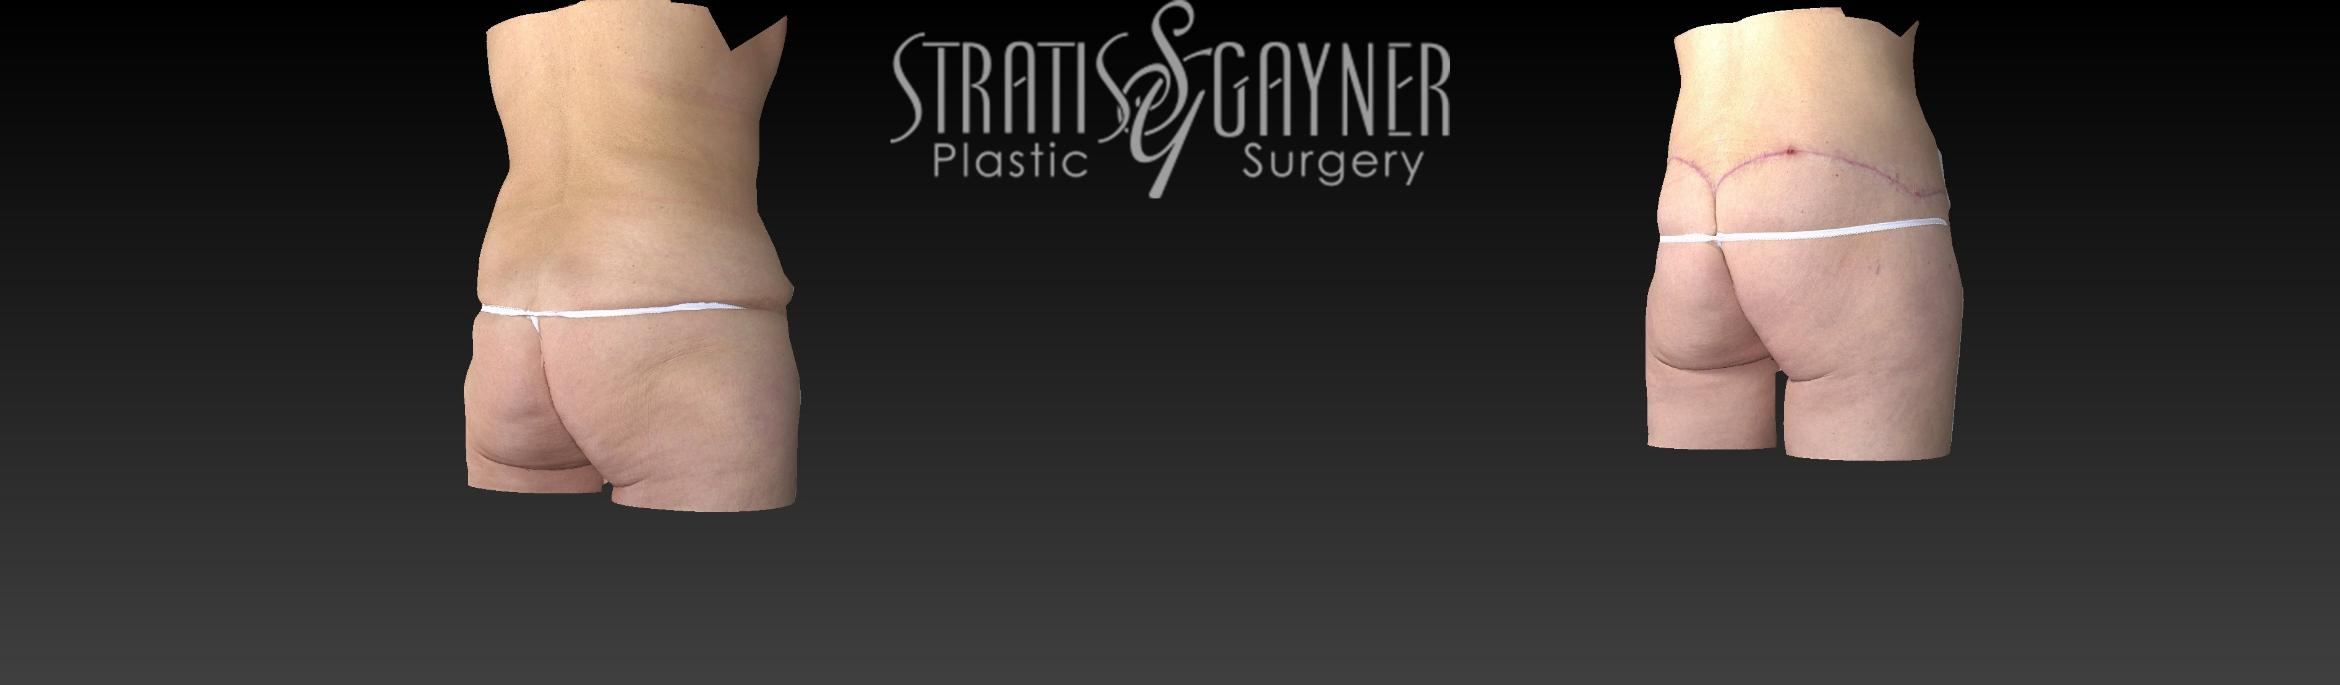 Body Lift Case 159 Before & After View #4 | Harrisburg, PA | Stratis Gayner Plastic Surgery